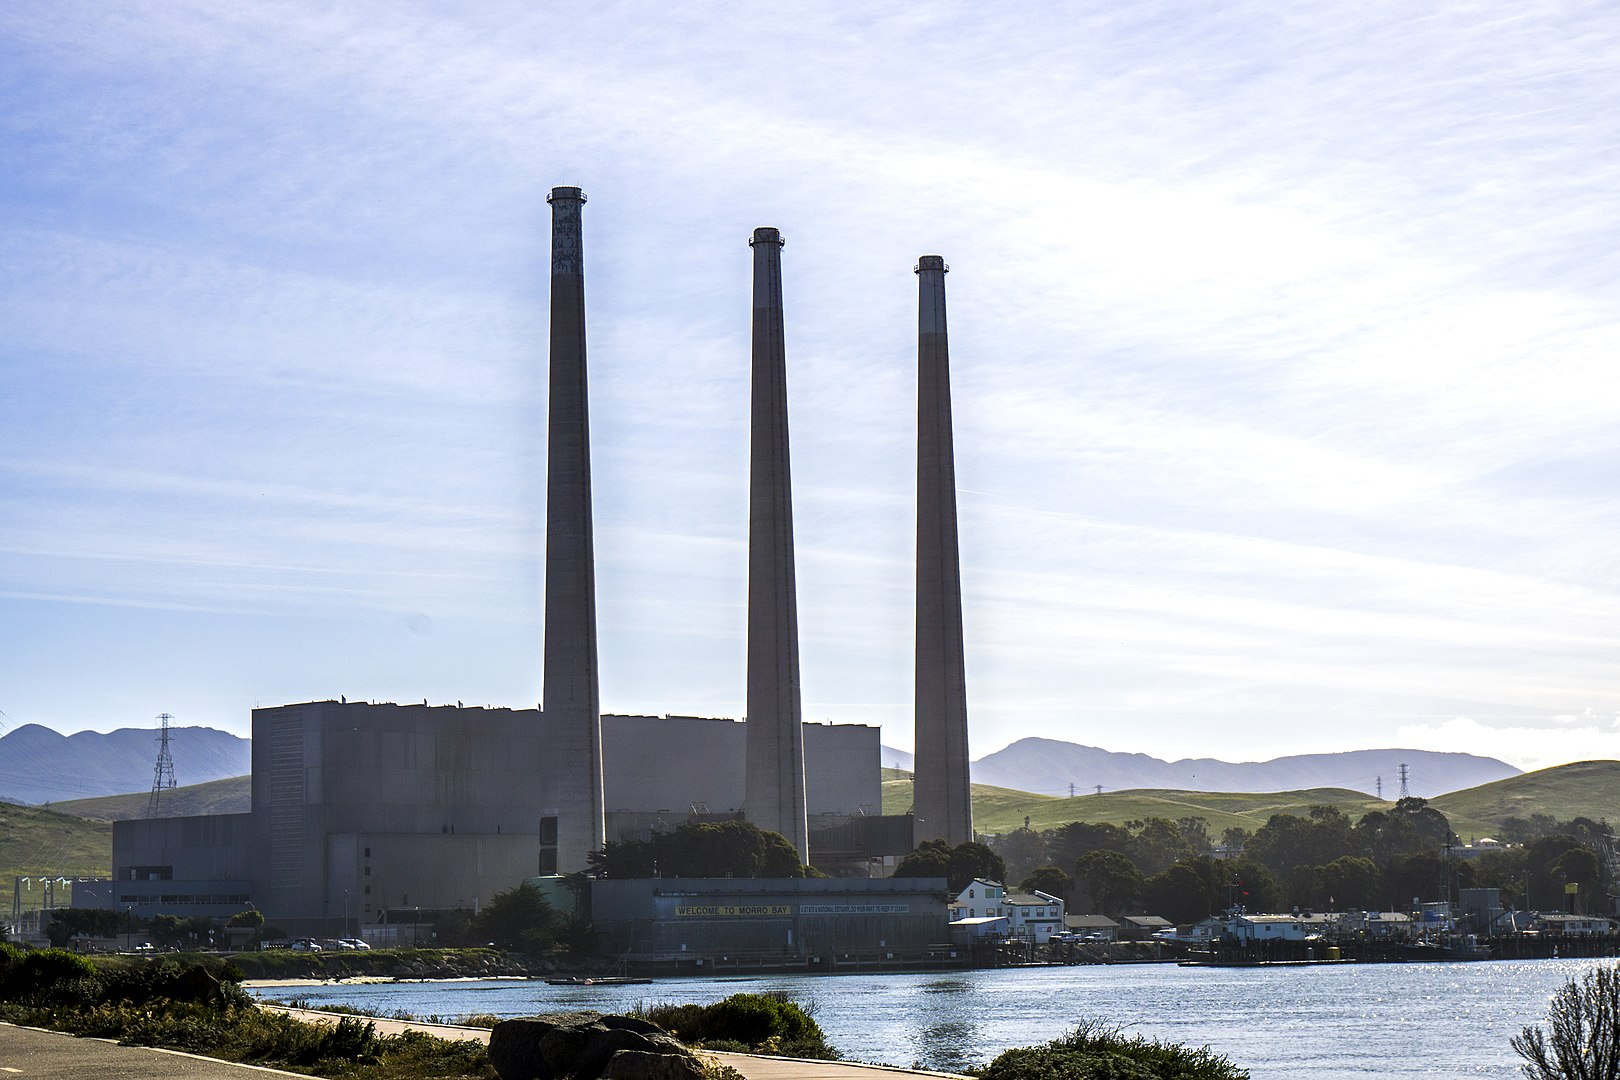 Morro Bay to get offshore wind farms